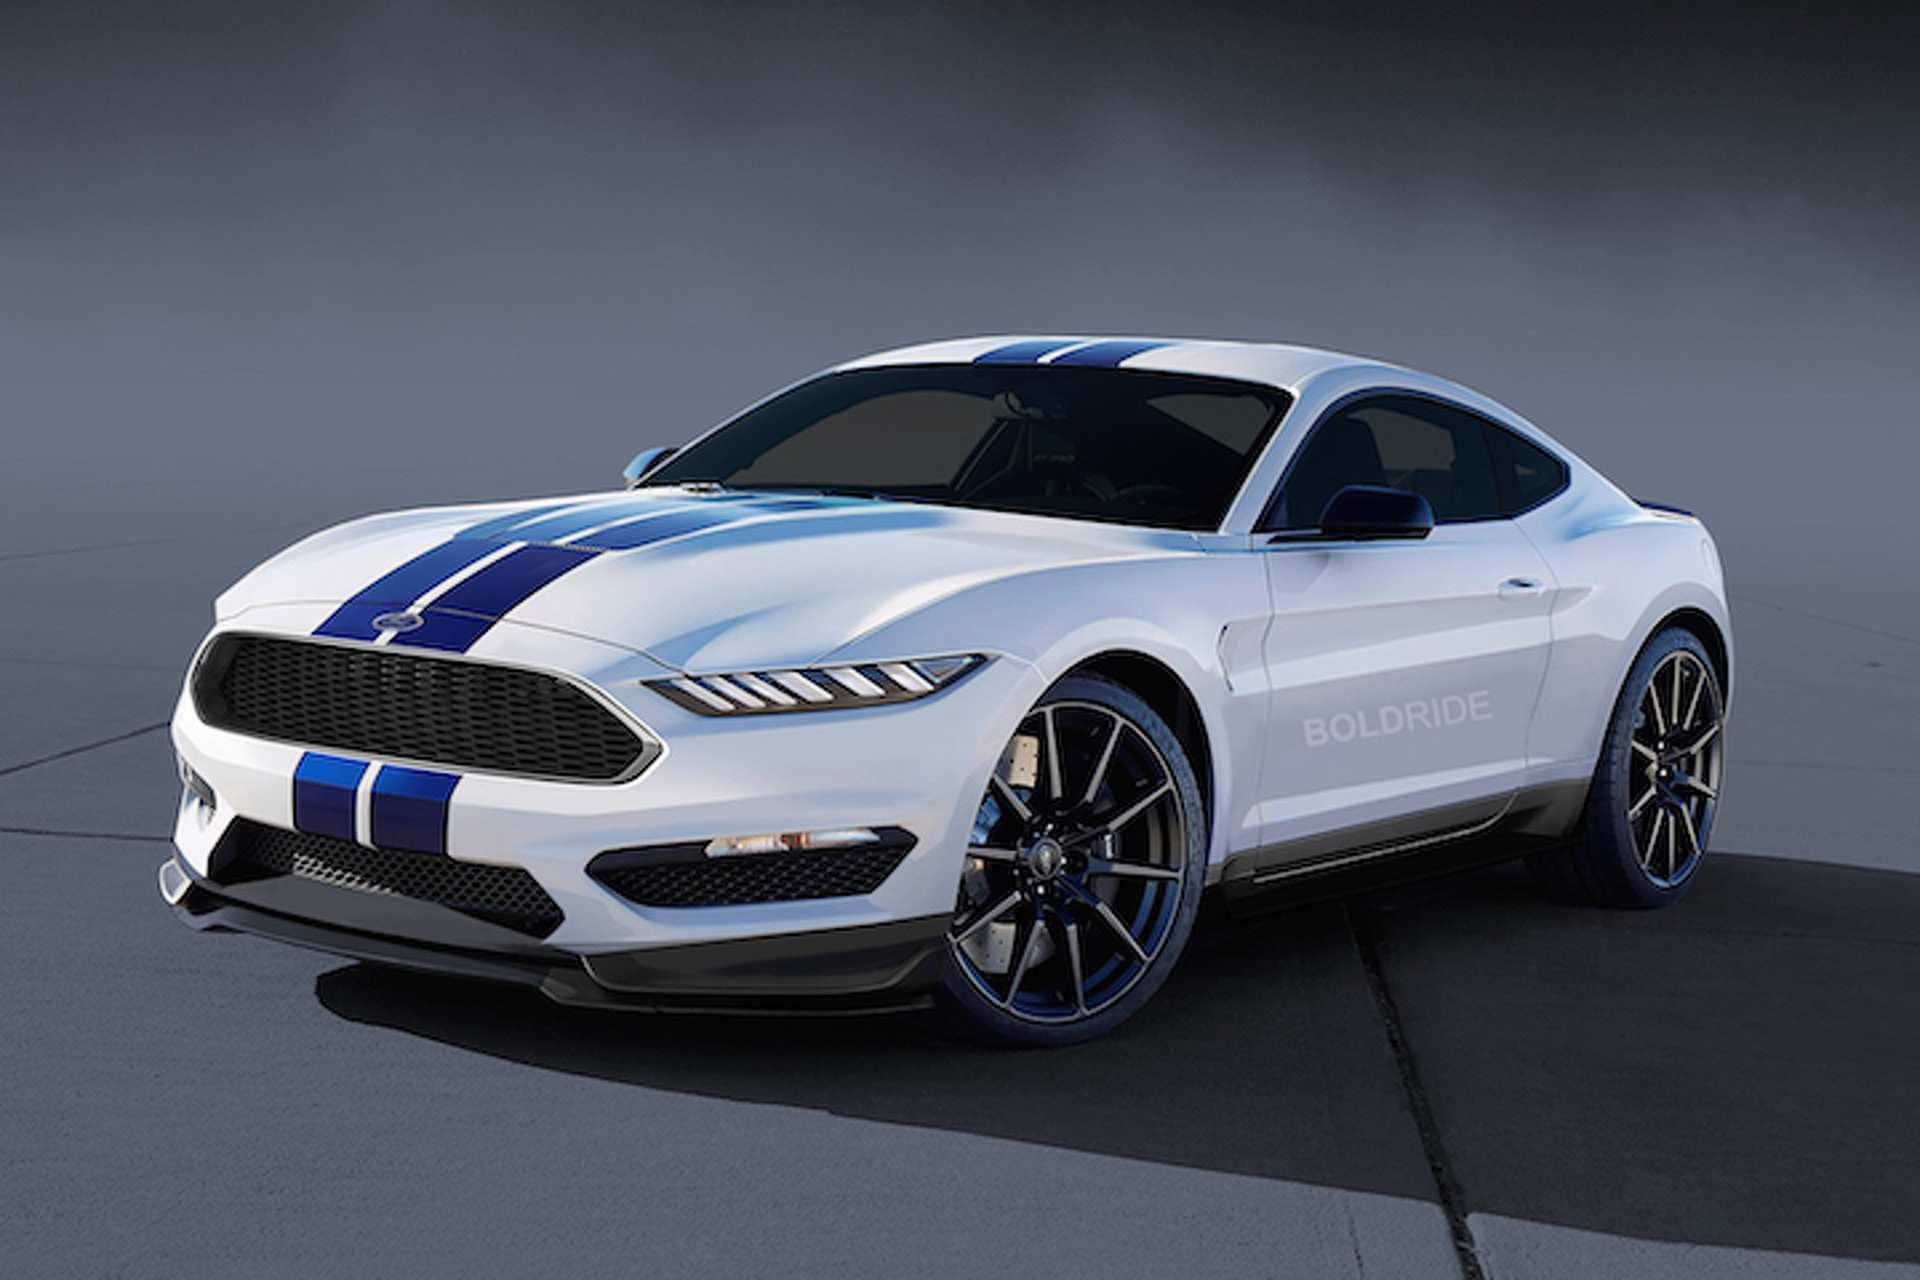 20 Great Ford Mustang Gt 2020 Price and Review for Ford Mustang Gt 2020